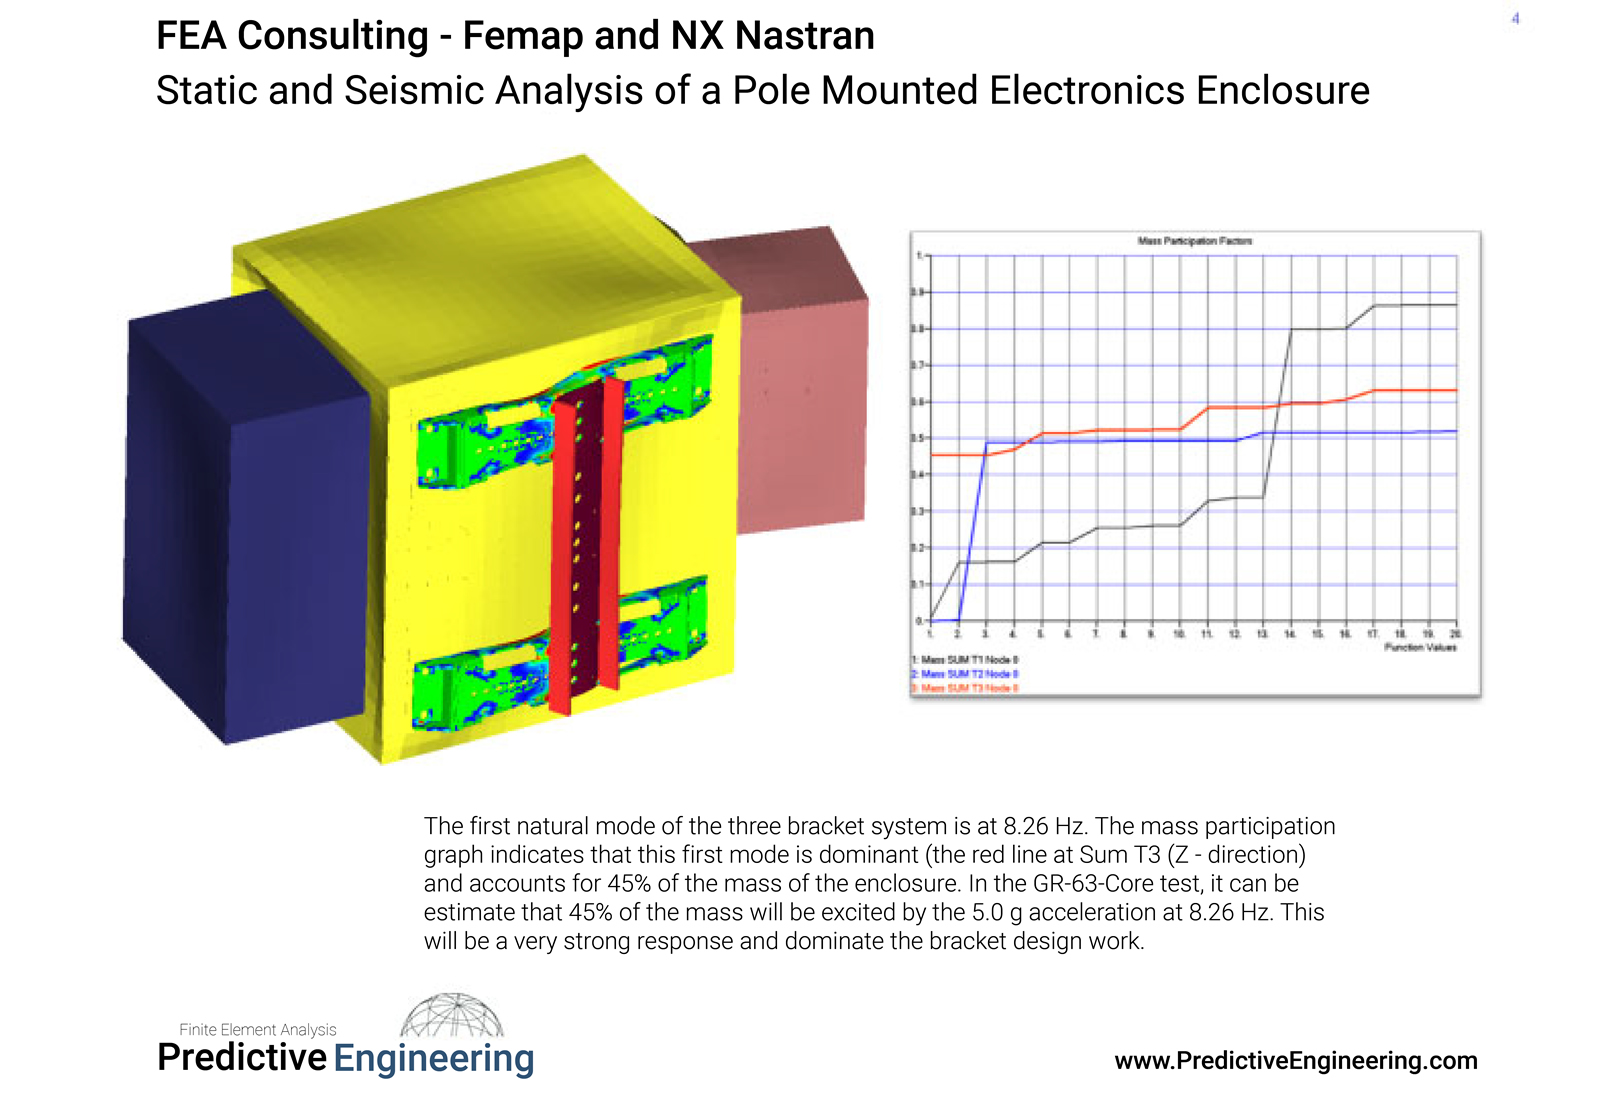 Figure 3: Normal modes and mass participation analysis results for the pole-mounted enclosure